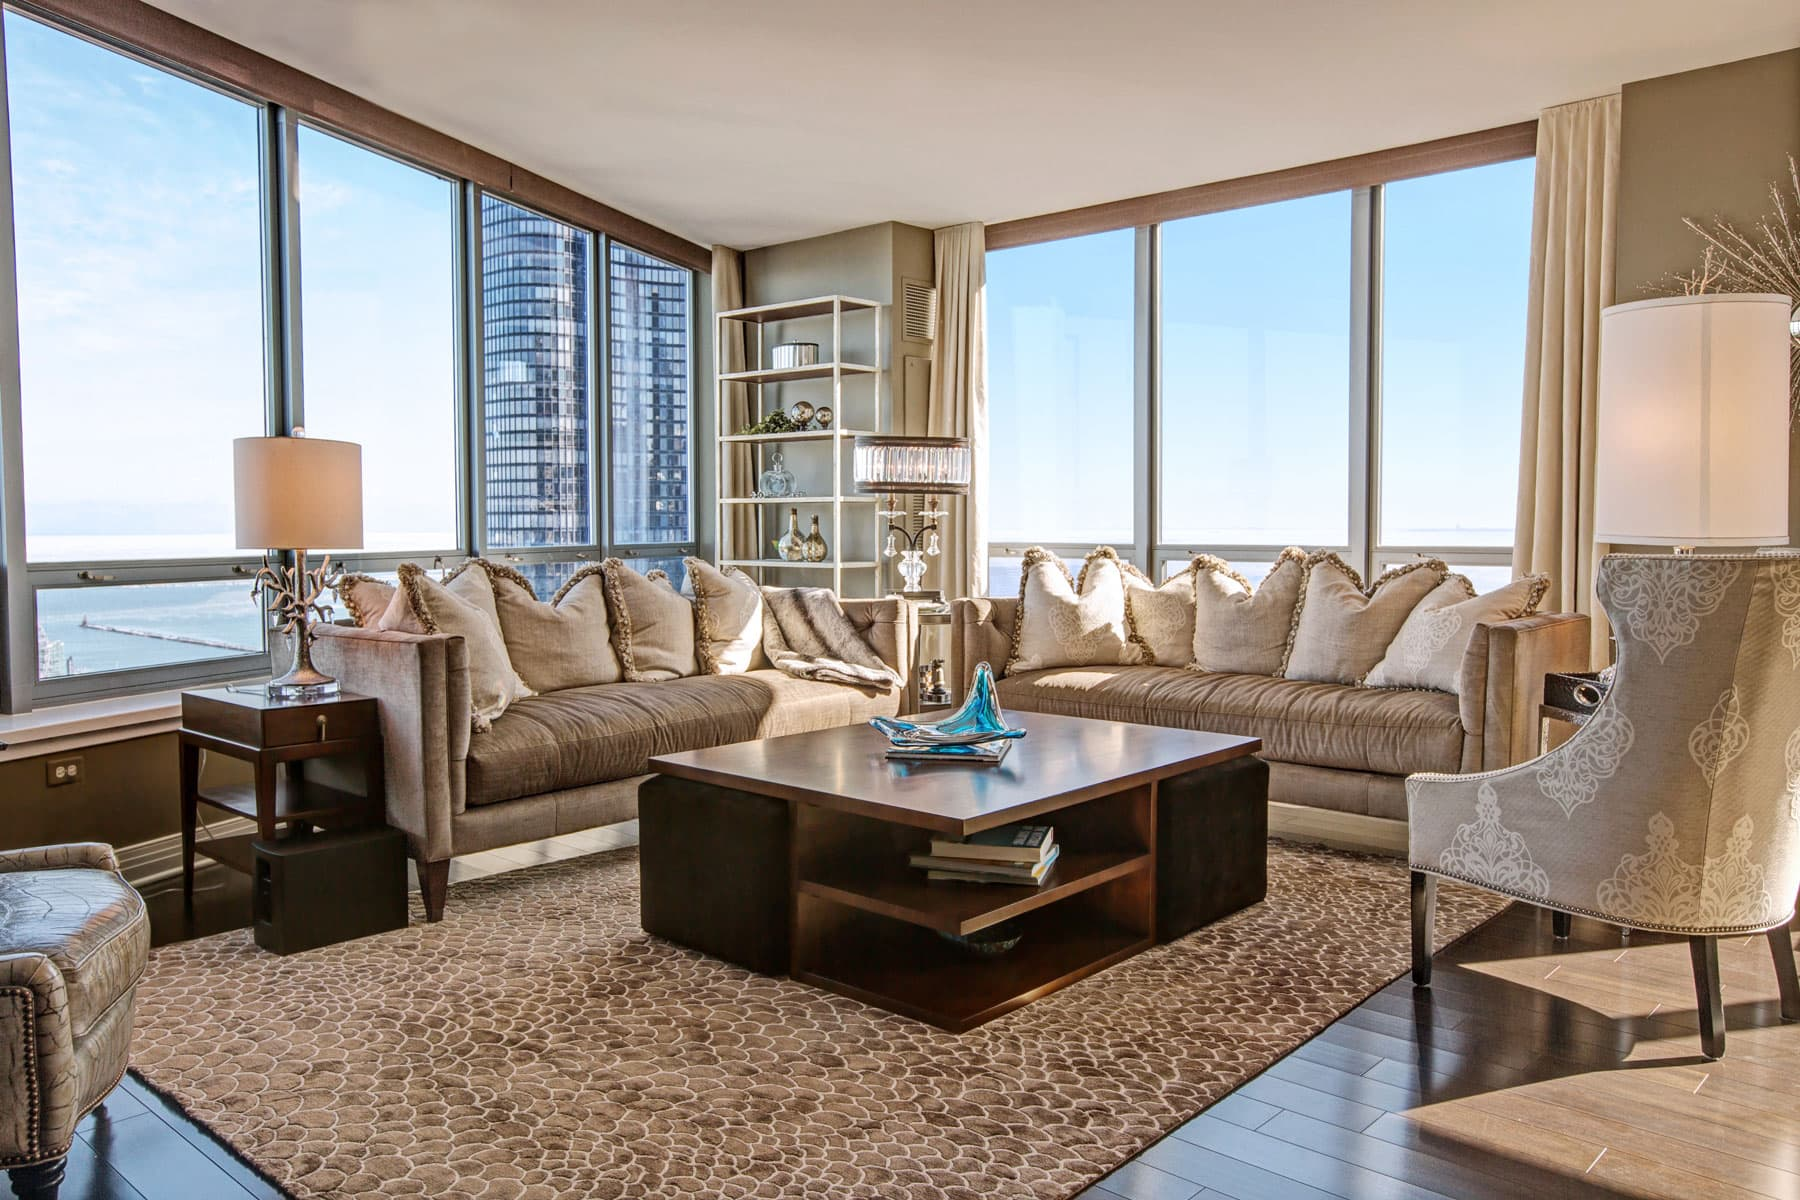 Luxury chicago condo interior design luxury interior for Interior design chicago